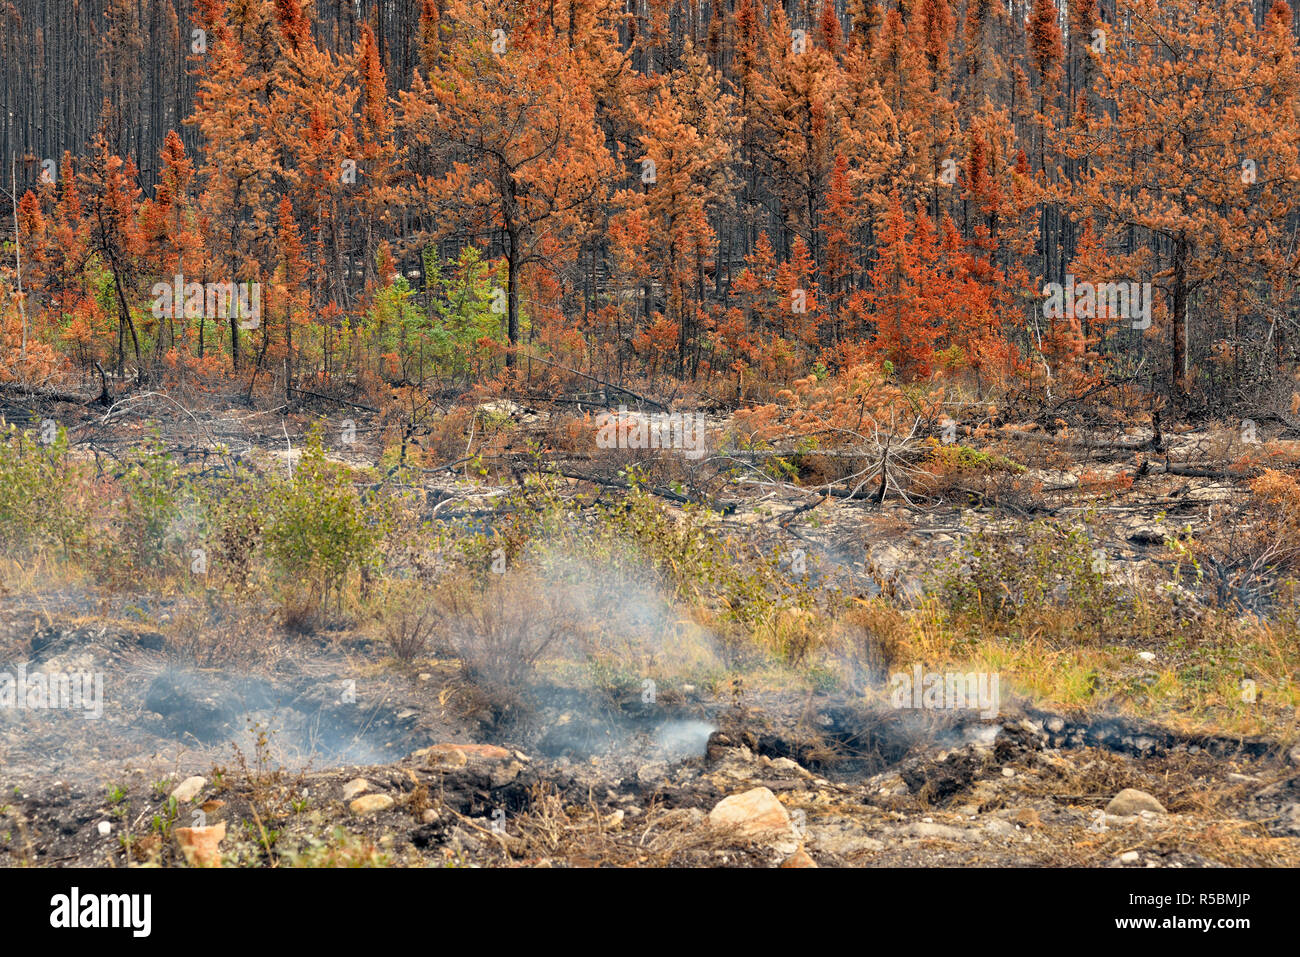 Forest fire 'hot spot' smoking near Hwy 3, Highway 3 to Yellowknife, Northwest Territories, Canada - Stock Image